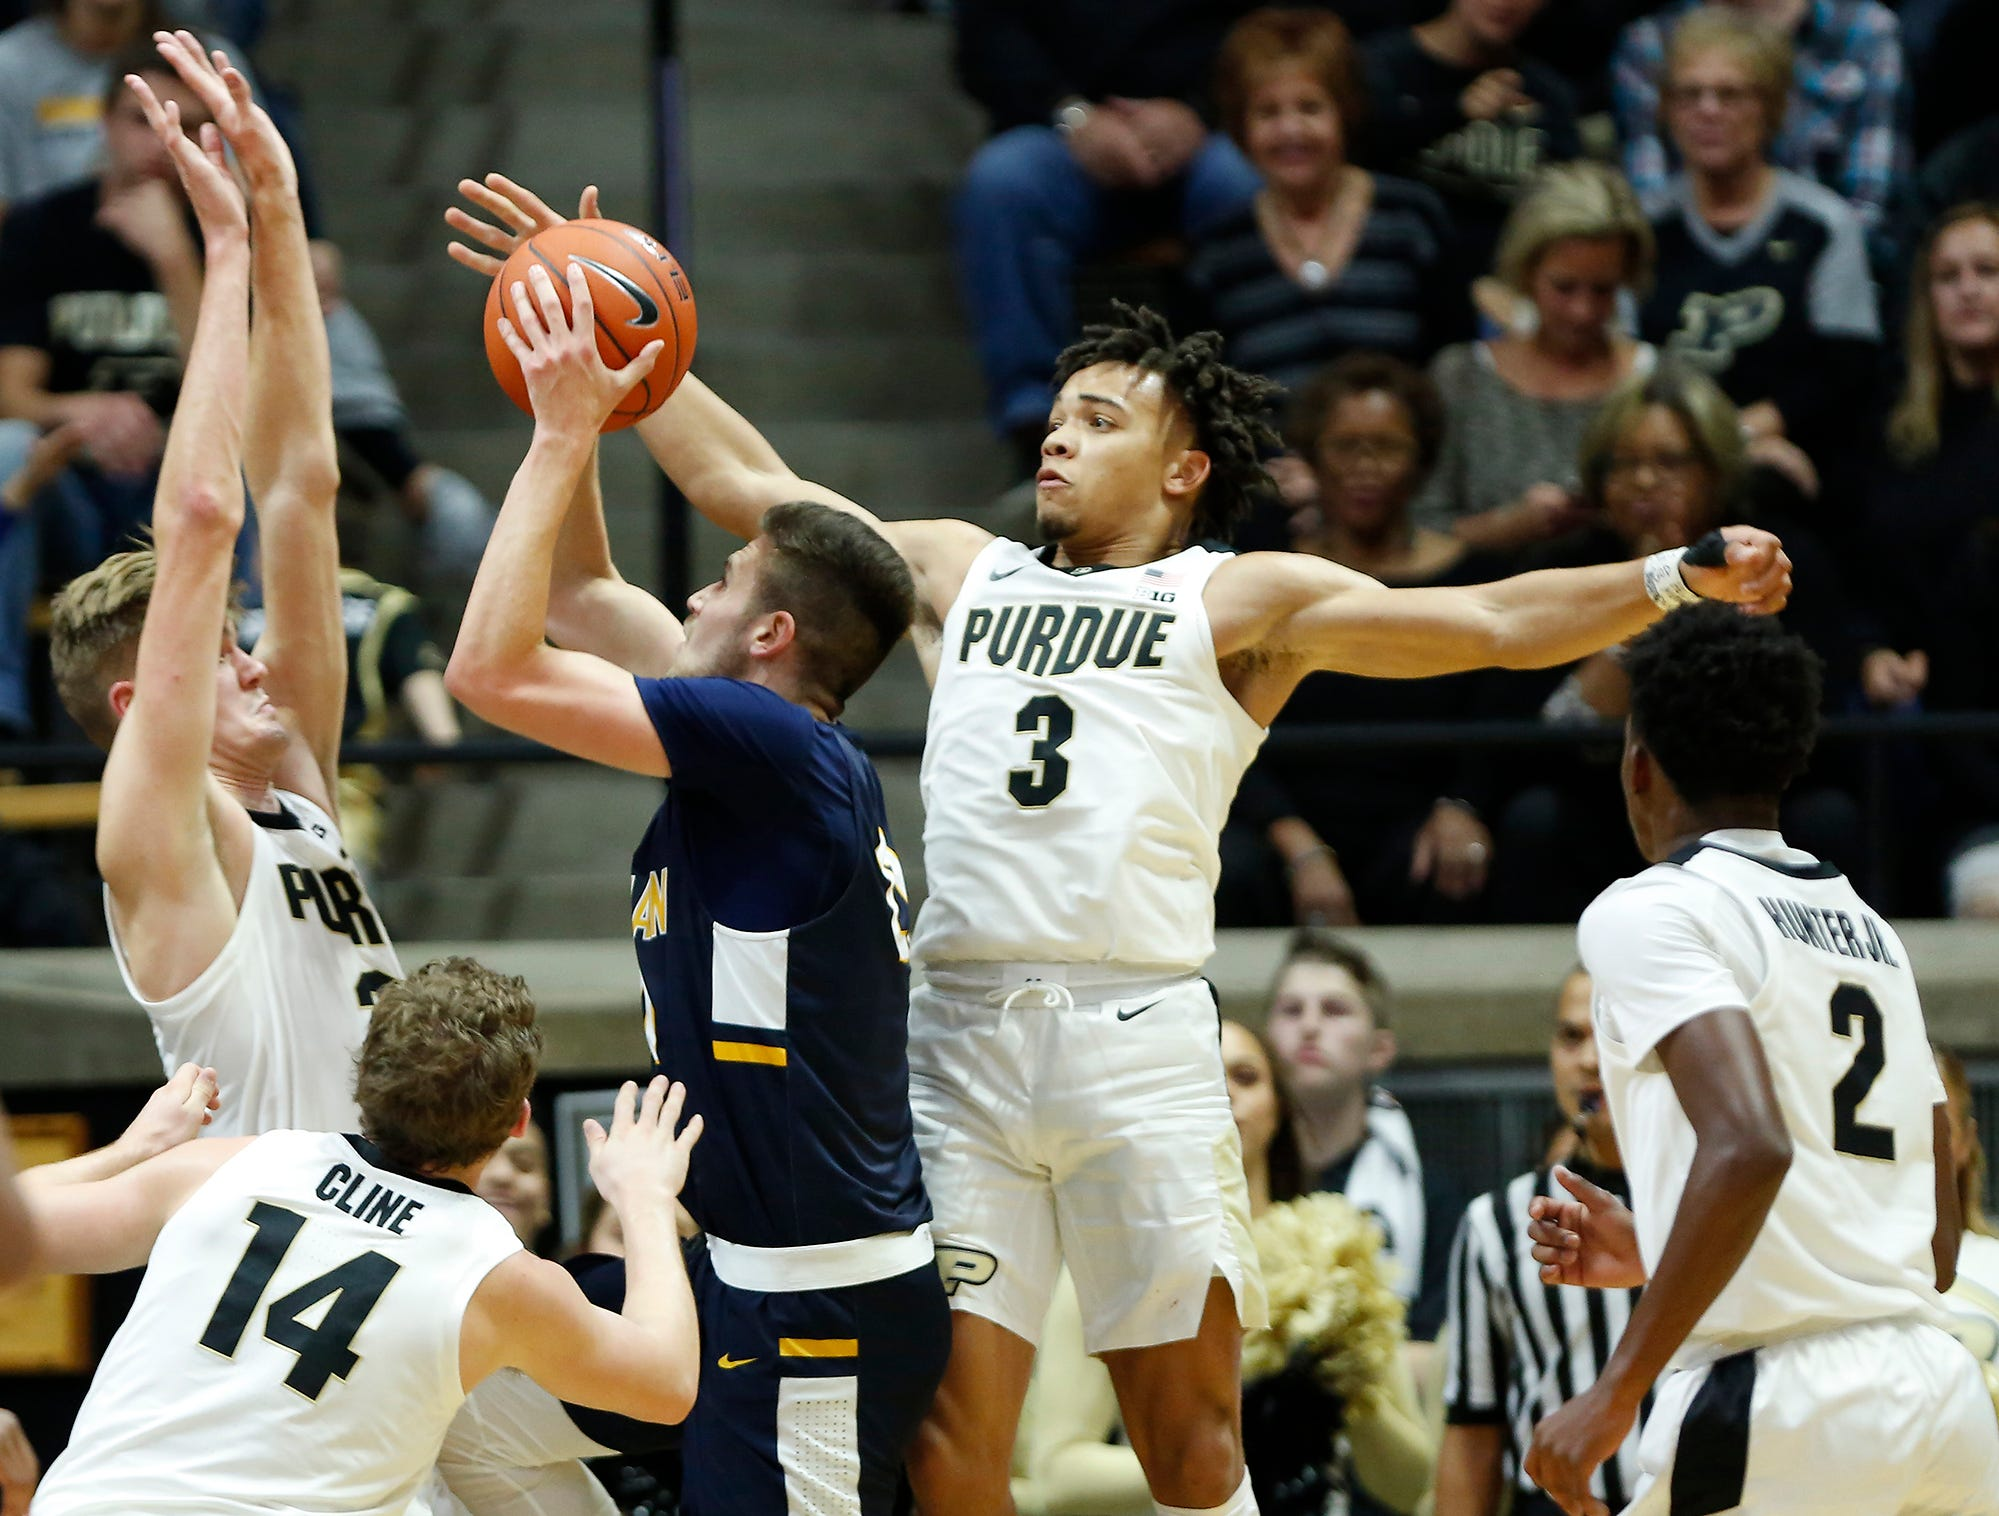 Carsen Edwards and Matt Haarms of Purdue work to deny a shot by Cameron Wolter of Marian University Thursday, November 1, 2018, at Mackey Arena. Purdue defeated Marian University 75-56.